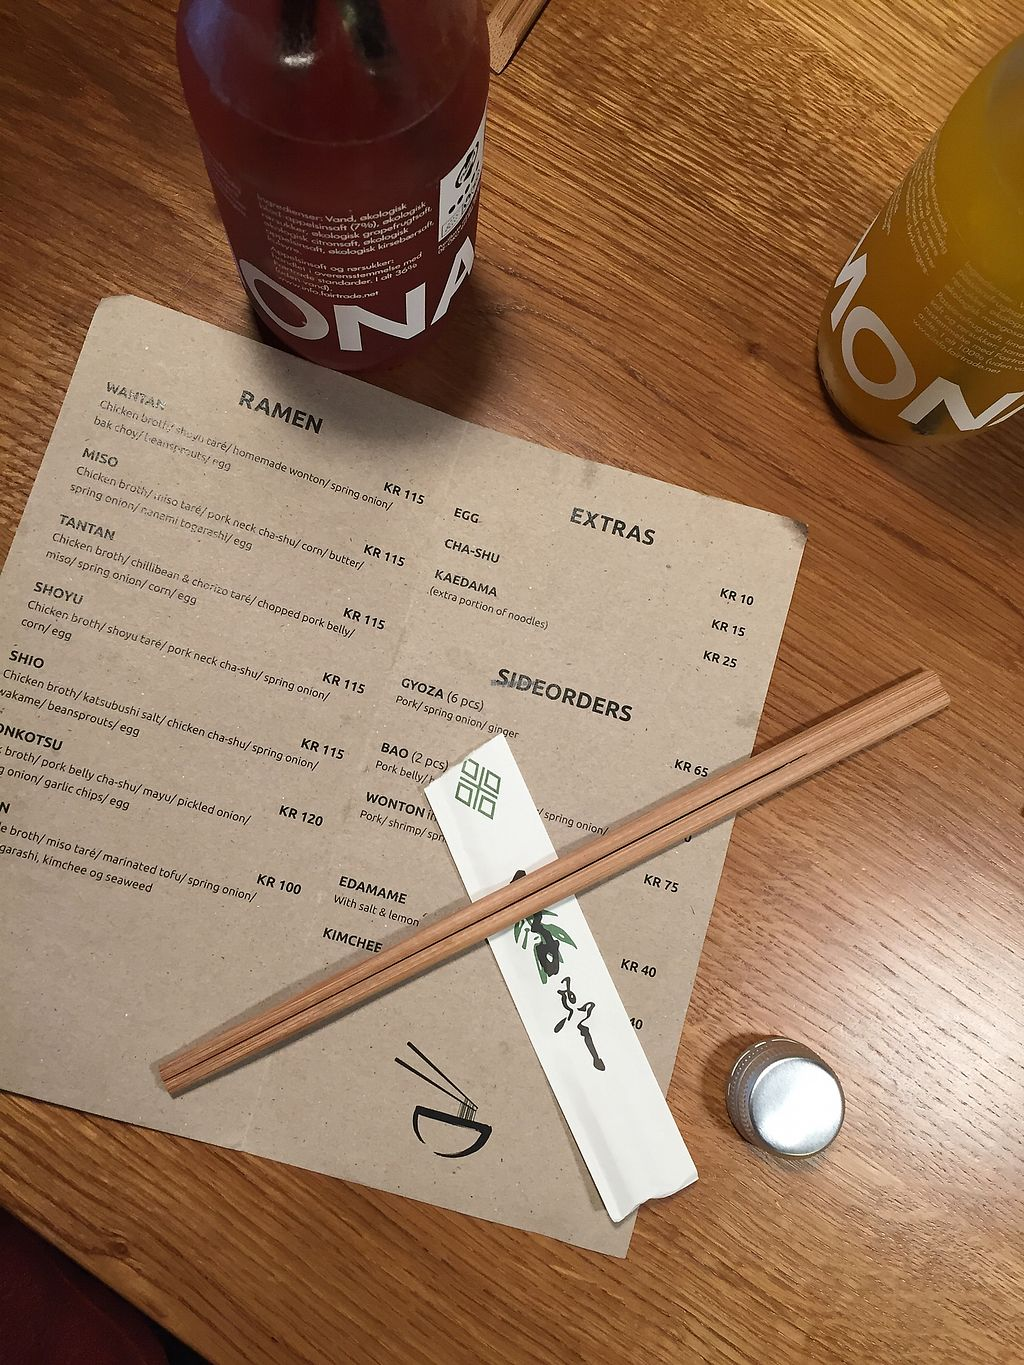 """Photo of Papa Ramen - Studiestræde  by <a href=""""/members/profile/greenx"""">greenx</a> <br/>Menu options  <br/> October 27, 2017  - <a href='/contact/abuse/image/84123/319277'>Report</a>"""